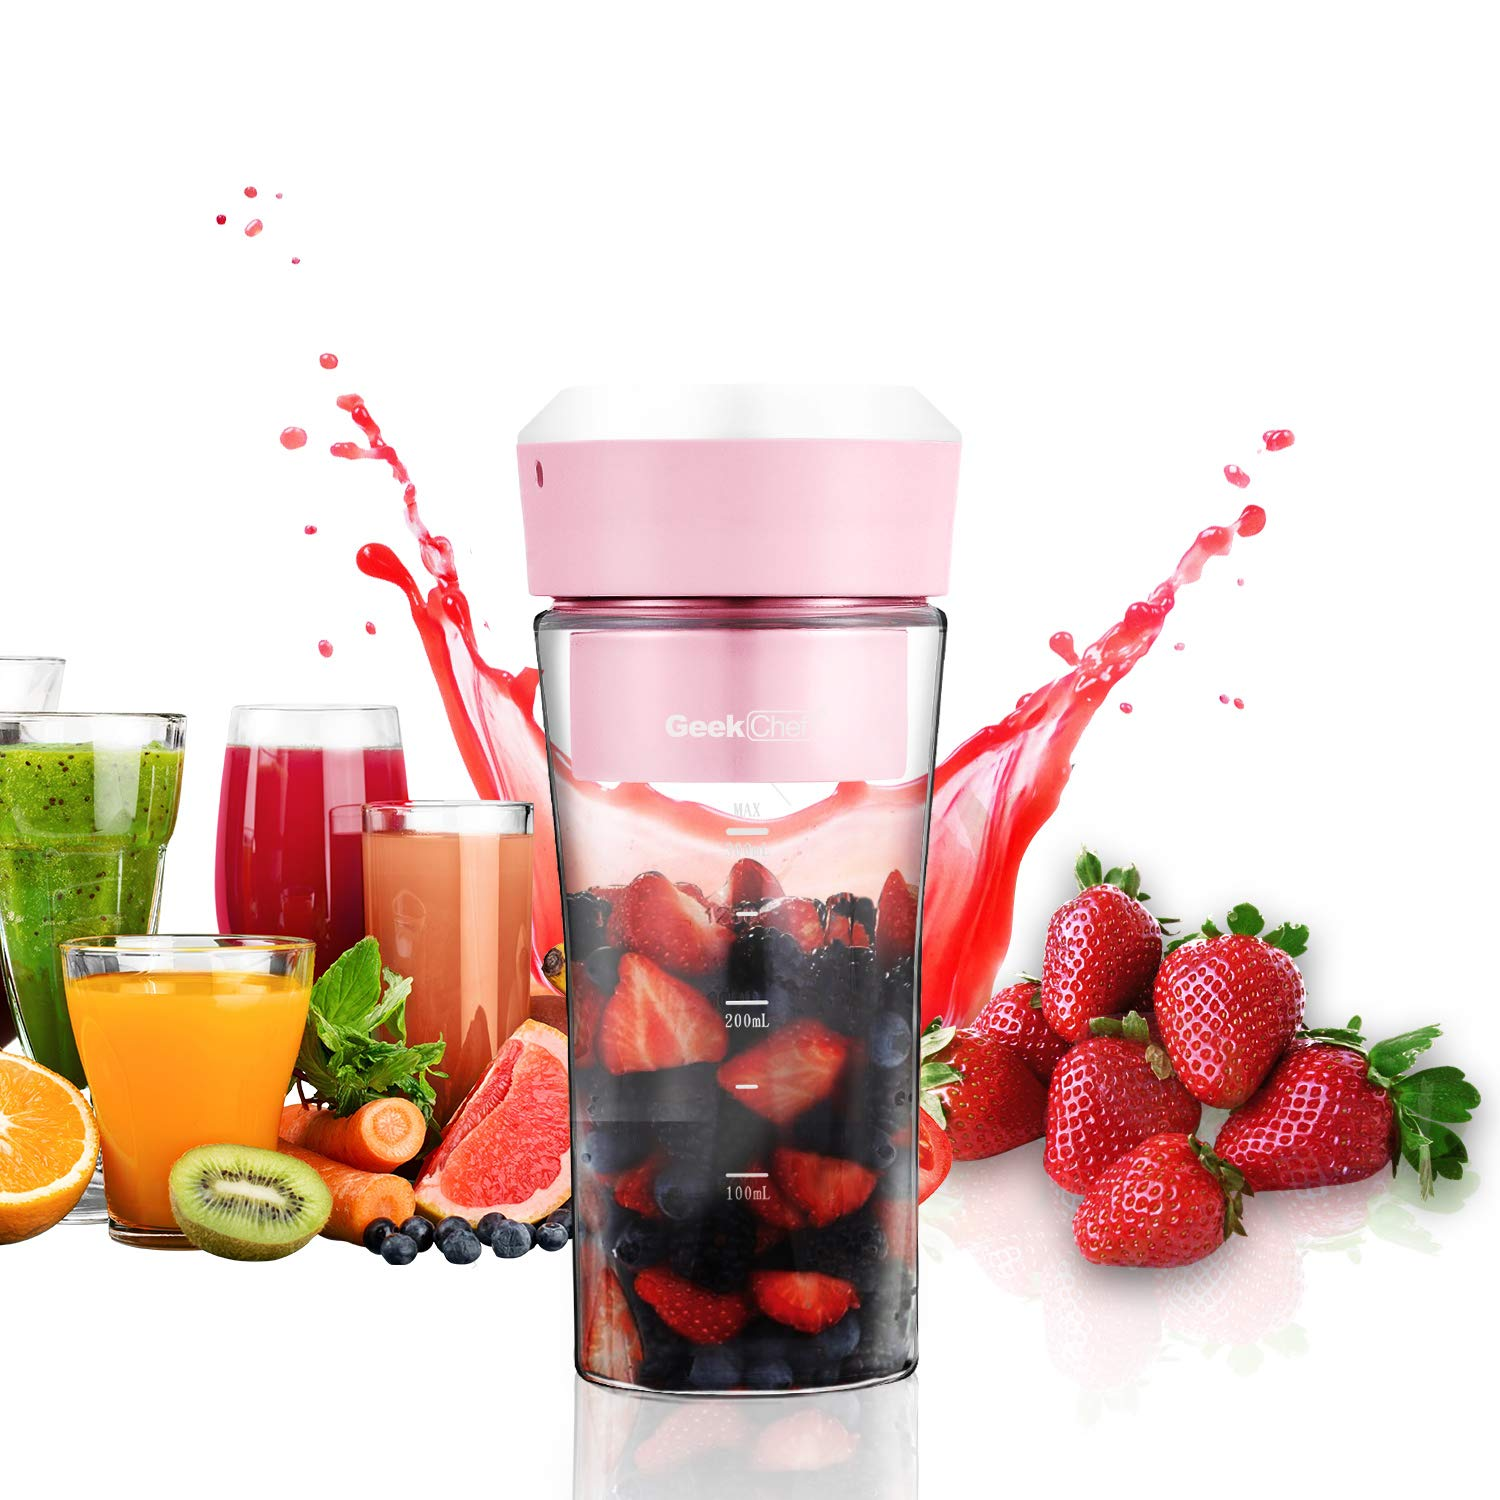 Portable Blender, Geek Chef USB Fruit Juicer Mini Personal Blender Small Blender, Shake and Smoothie Rechargeable Mixer Waterproof Juicer Cup, Mixing Machine BPA Free PB-P01